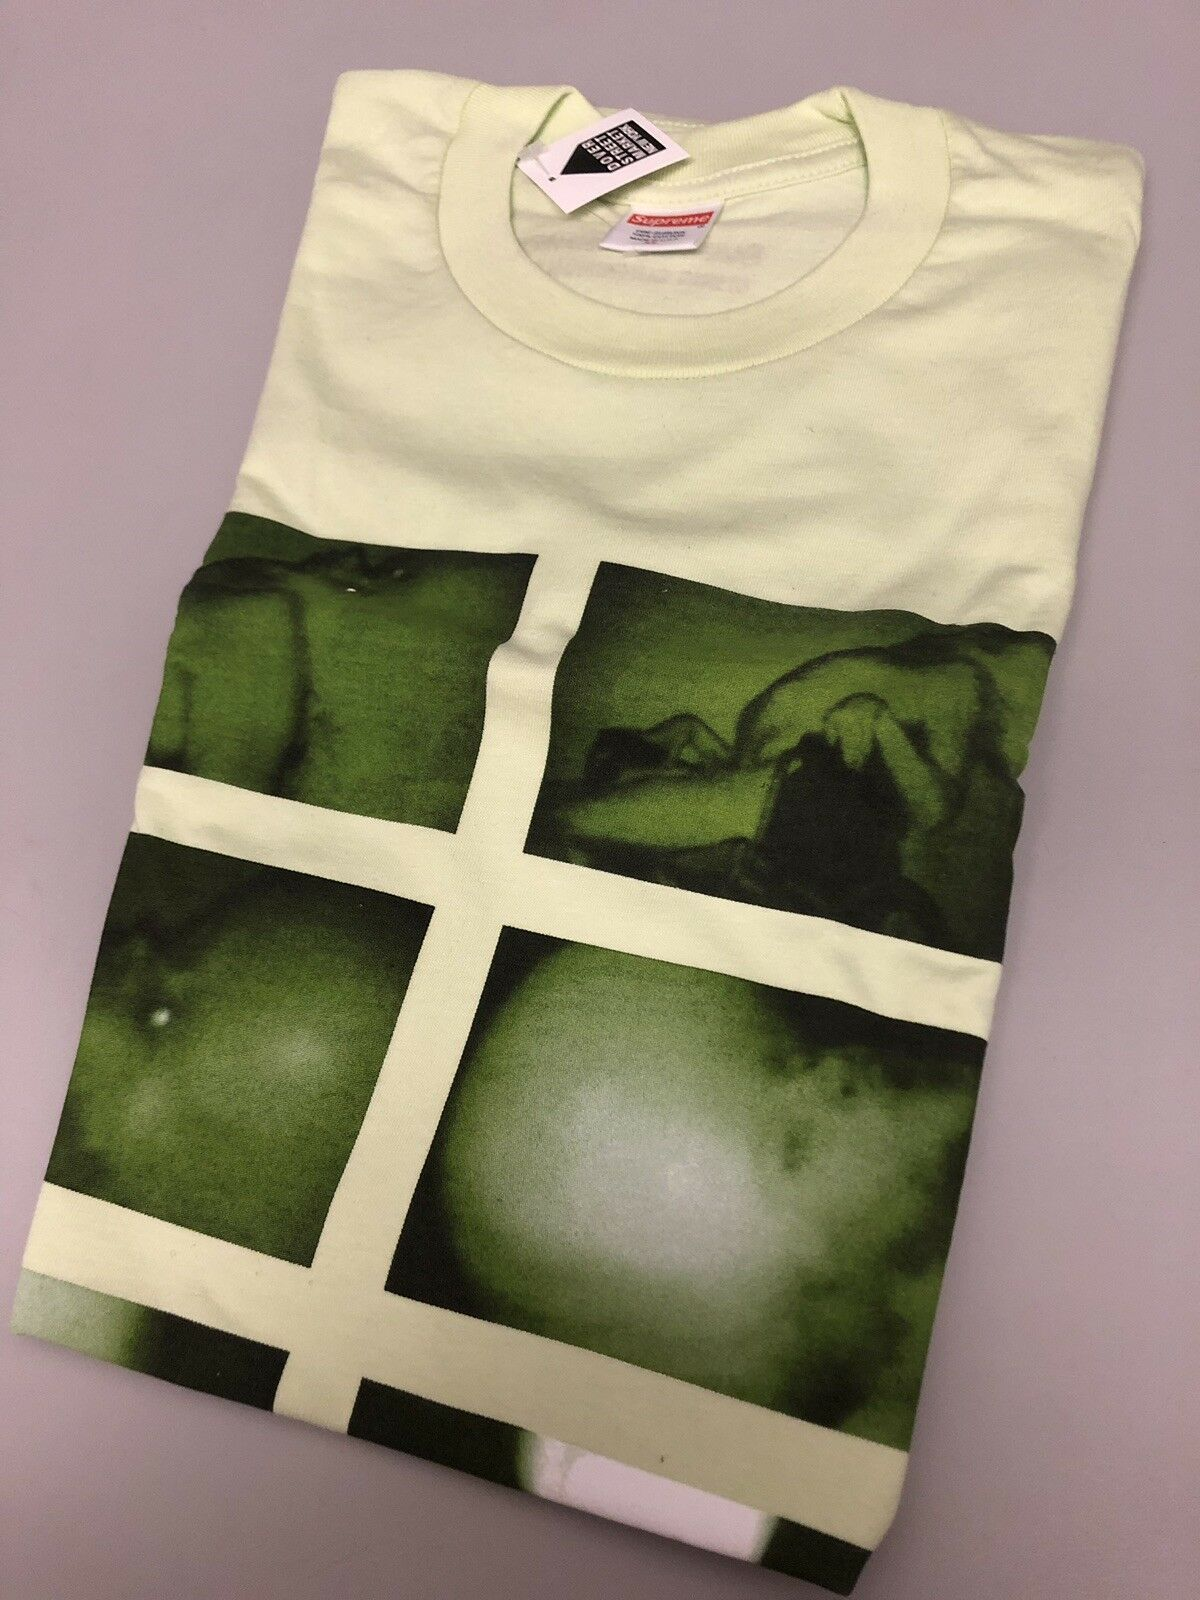 SUPREME CHRIS CUNNINGHAM RUBBER JOHNNY TEE SHIRT PALE MINT XL XLARGE FW18